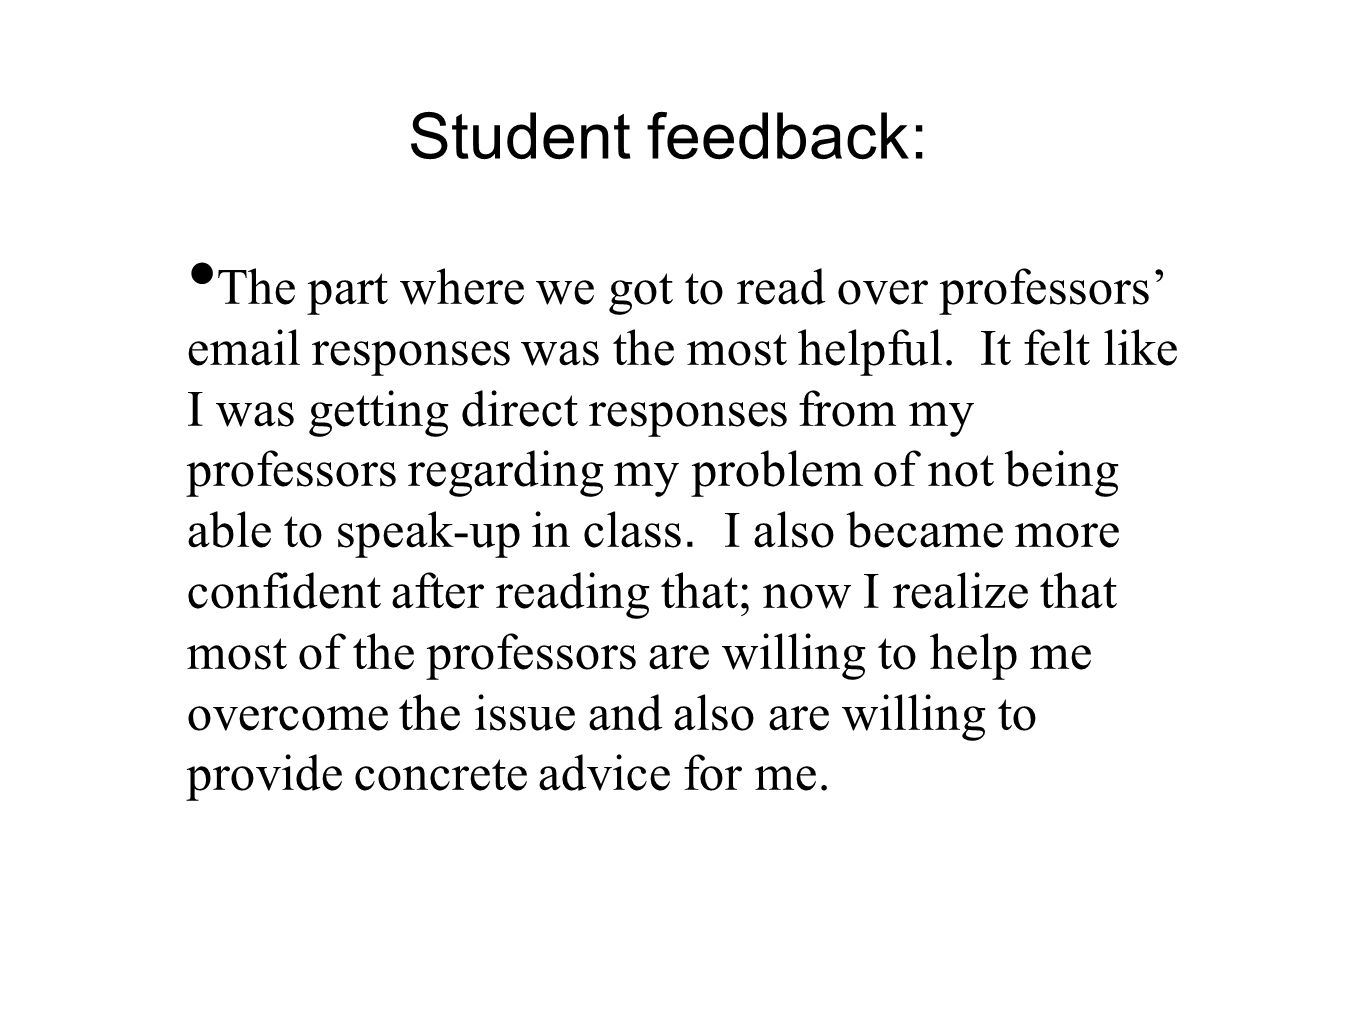 Student feedback: The part where we got to read over professors' email responses was the most helpful.